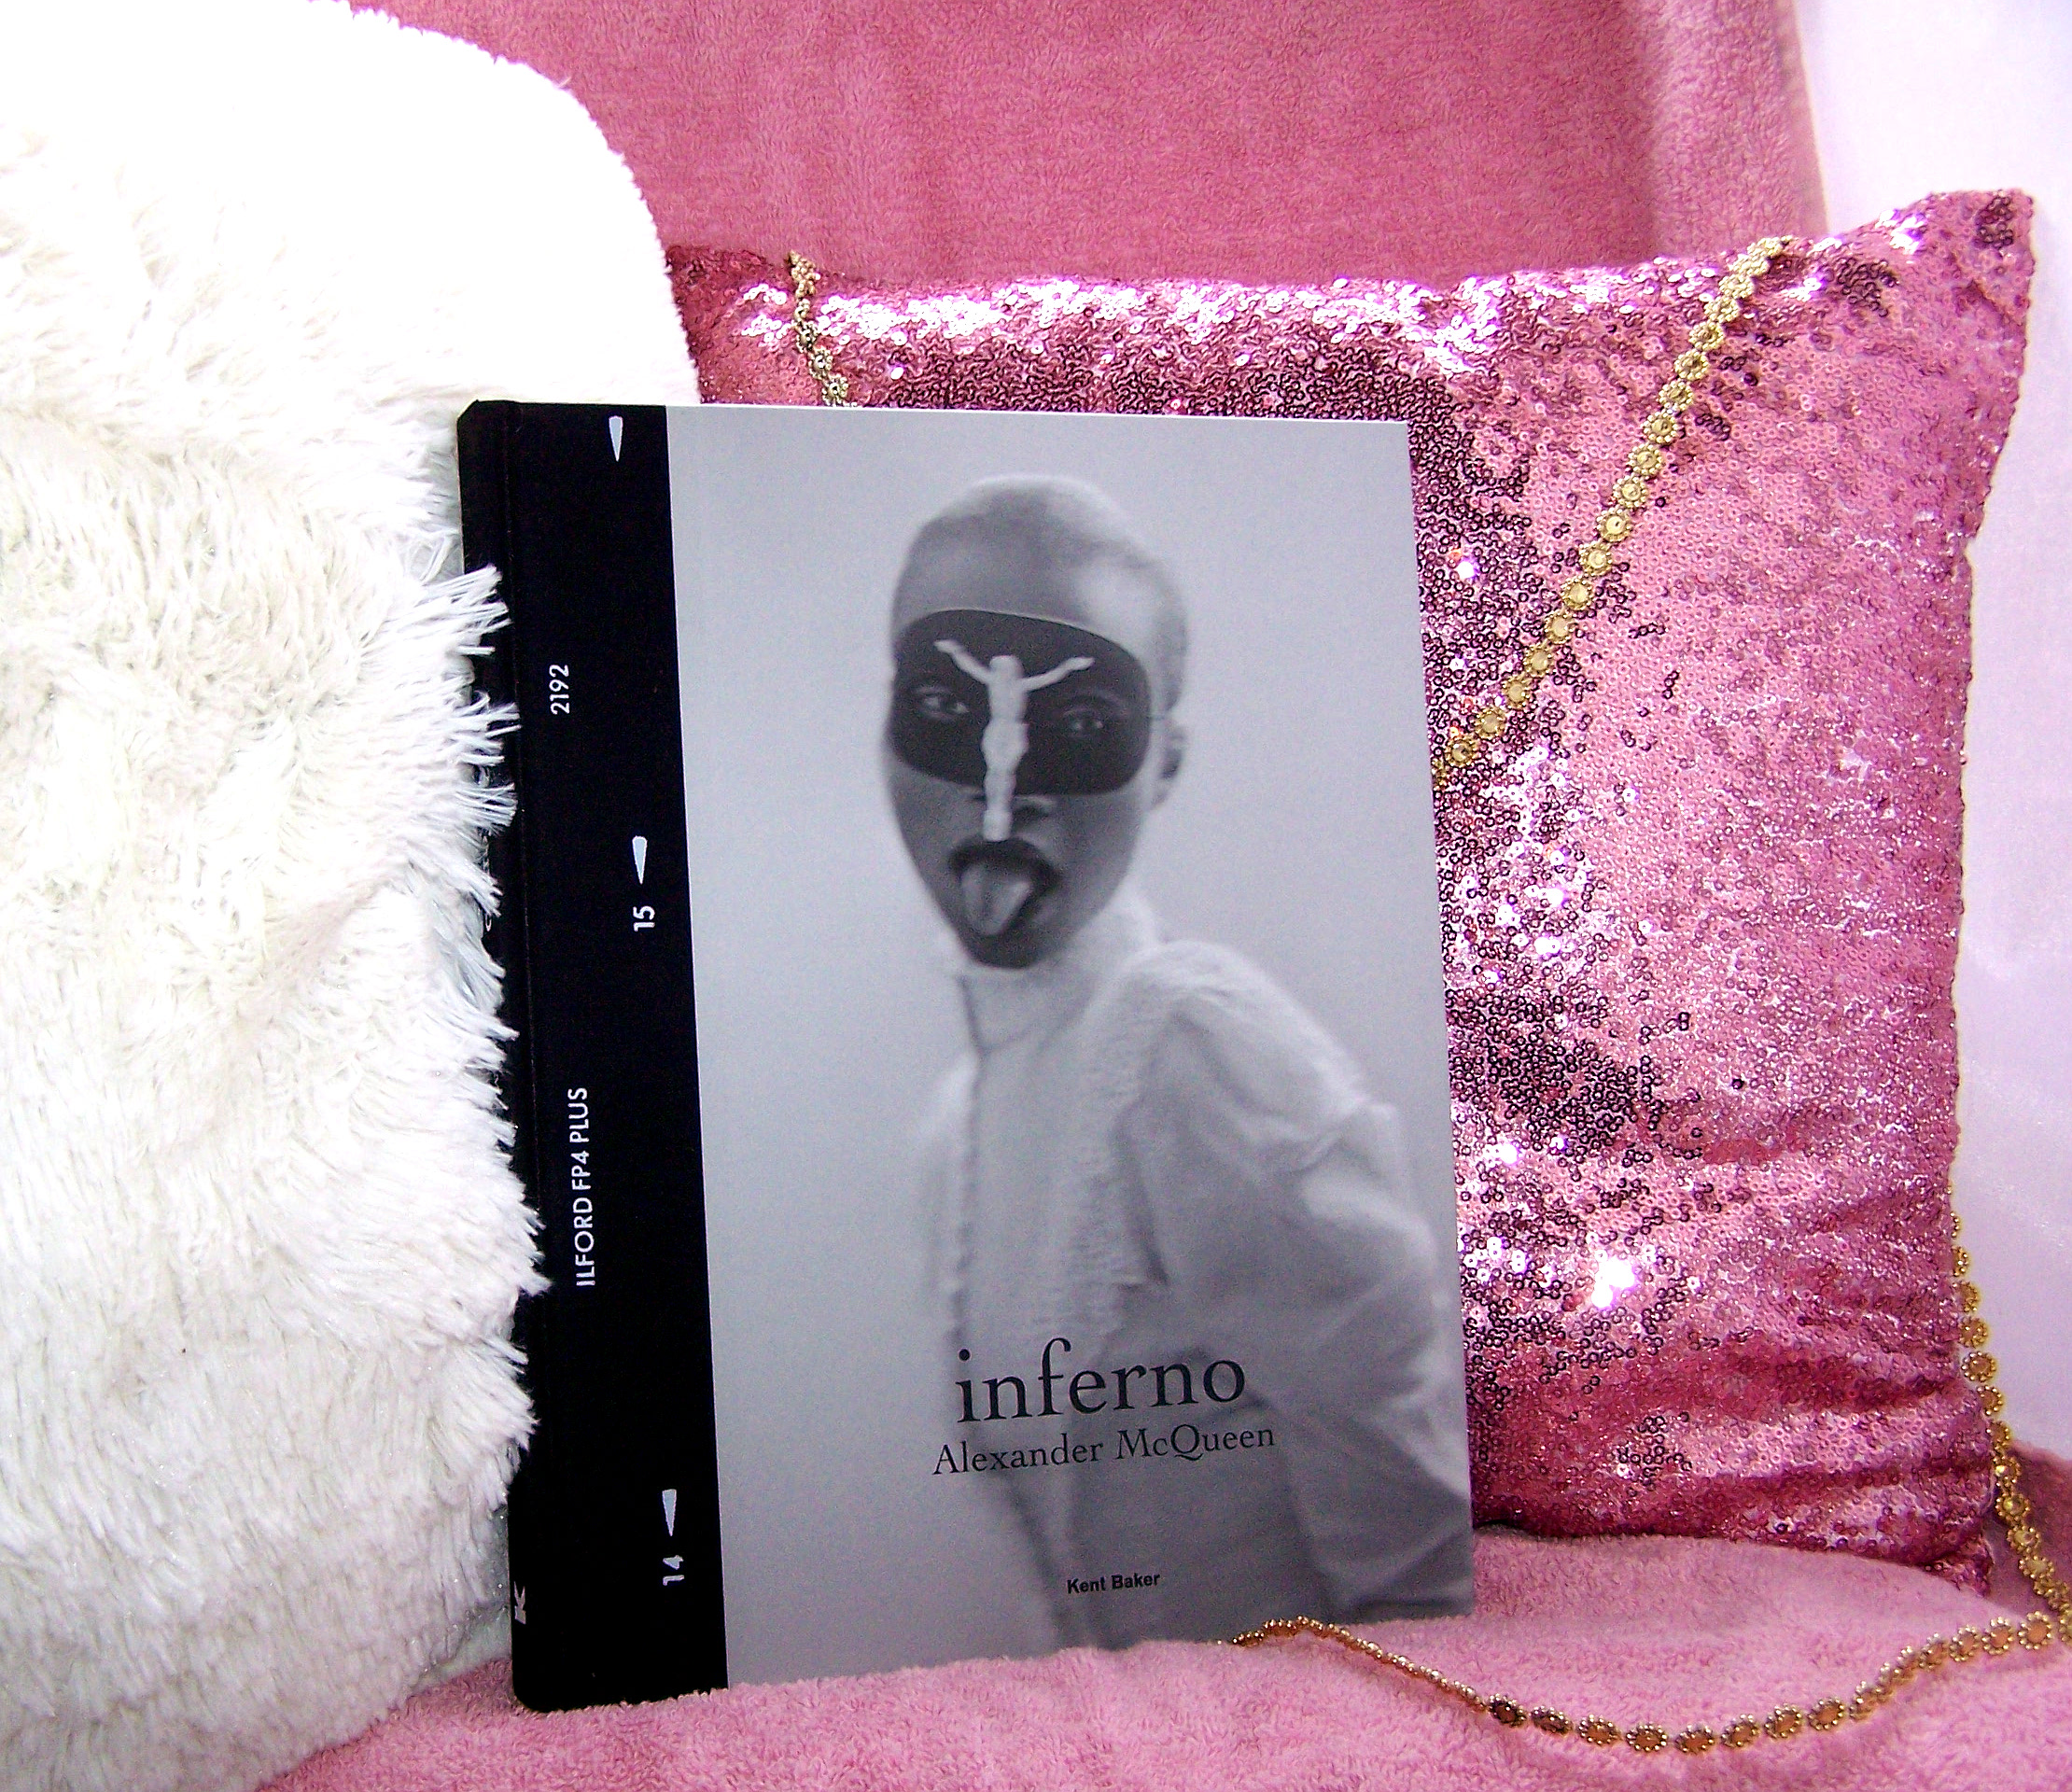 inferno alexander mcqueen fashion beauty luxe luxury book giveaway review glamour high fashion style filth sparkle photo photography win enter coffee table book coture couture icons icon